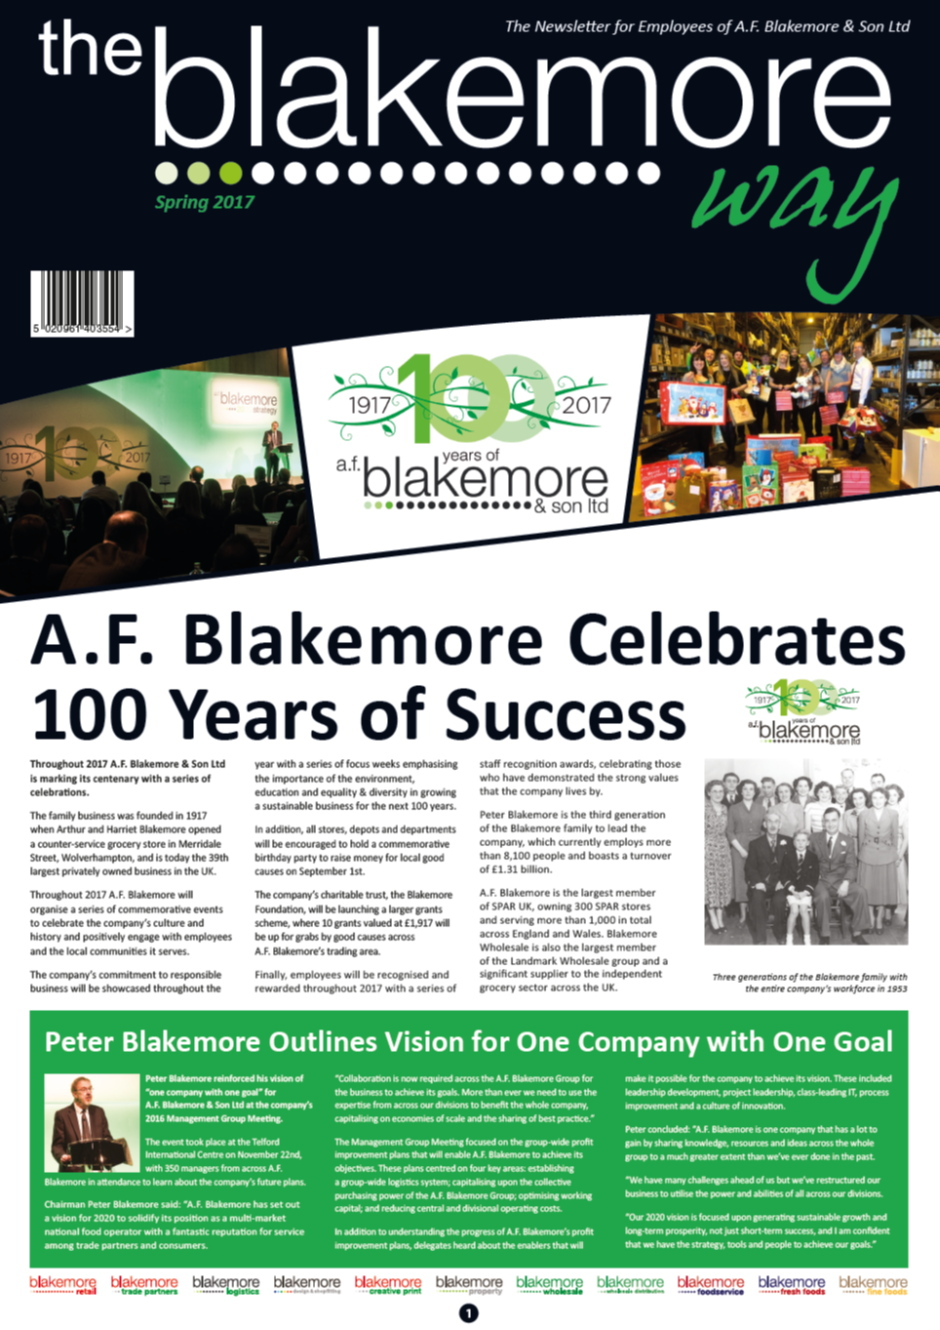 Blakemore_Way_Newspaper_Spring_2017